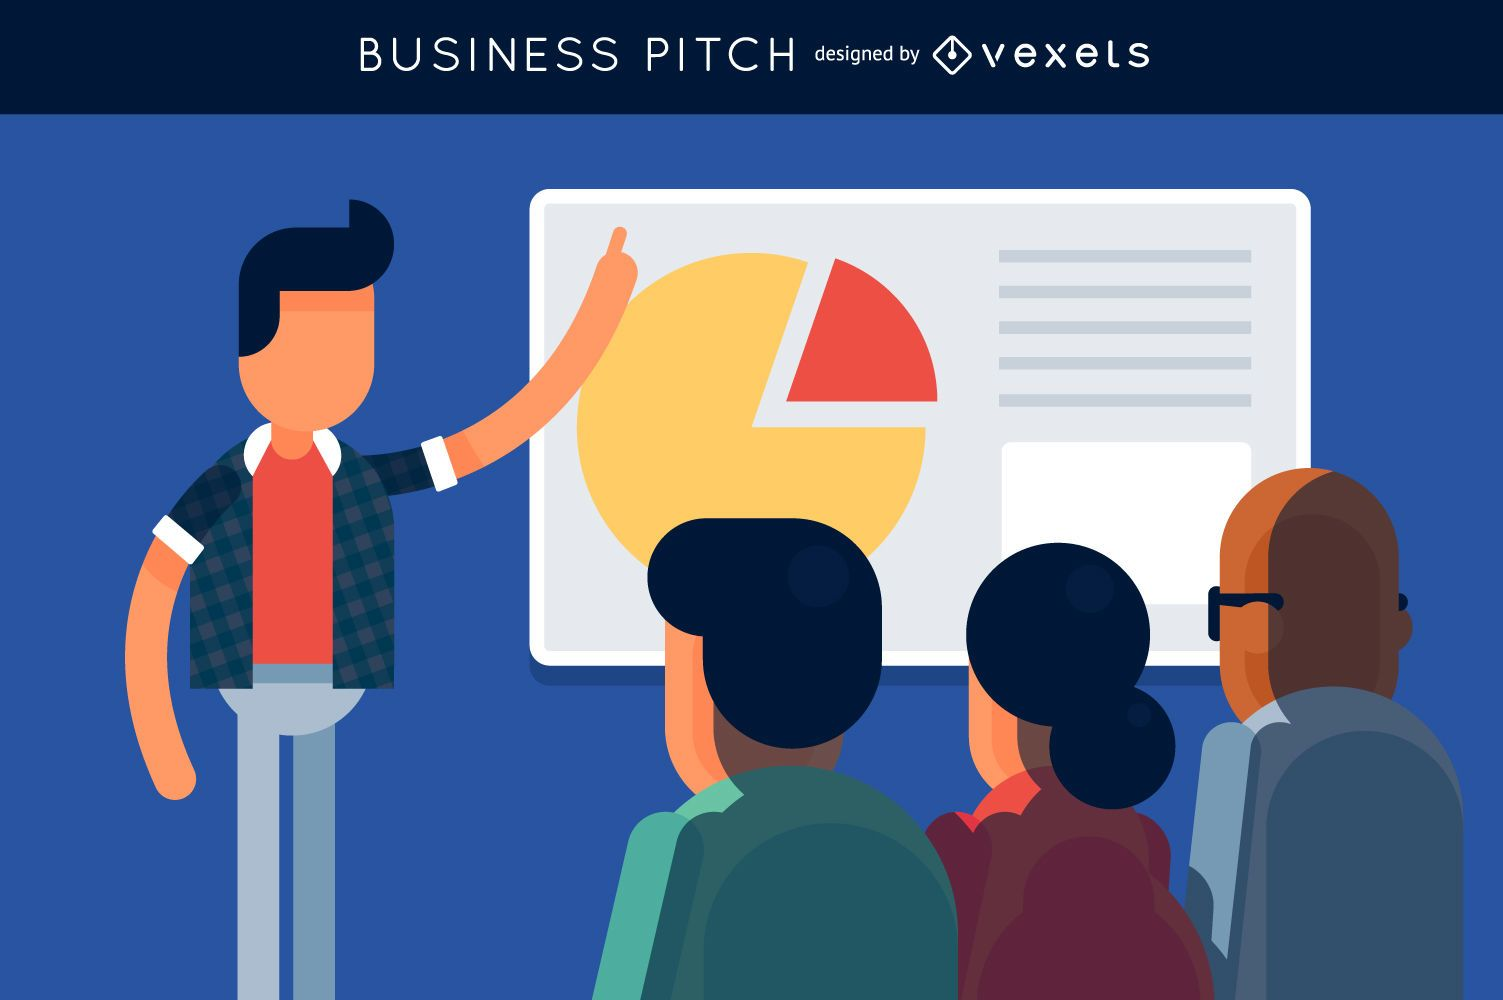 Business pitch meeting illustration